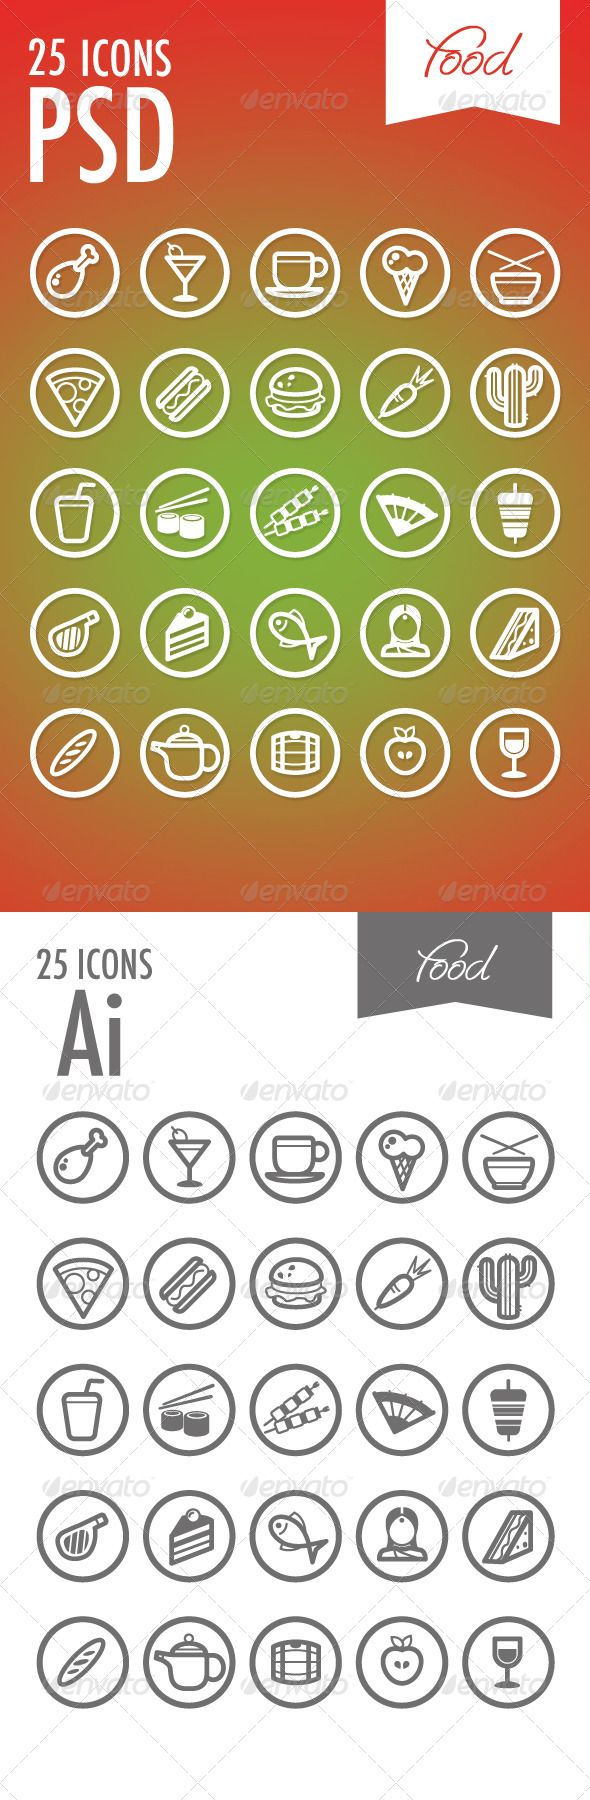 8 best icons images on pinterest icon set icons and typography 25 vector icons food biocorpaavc